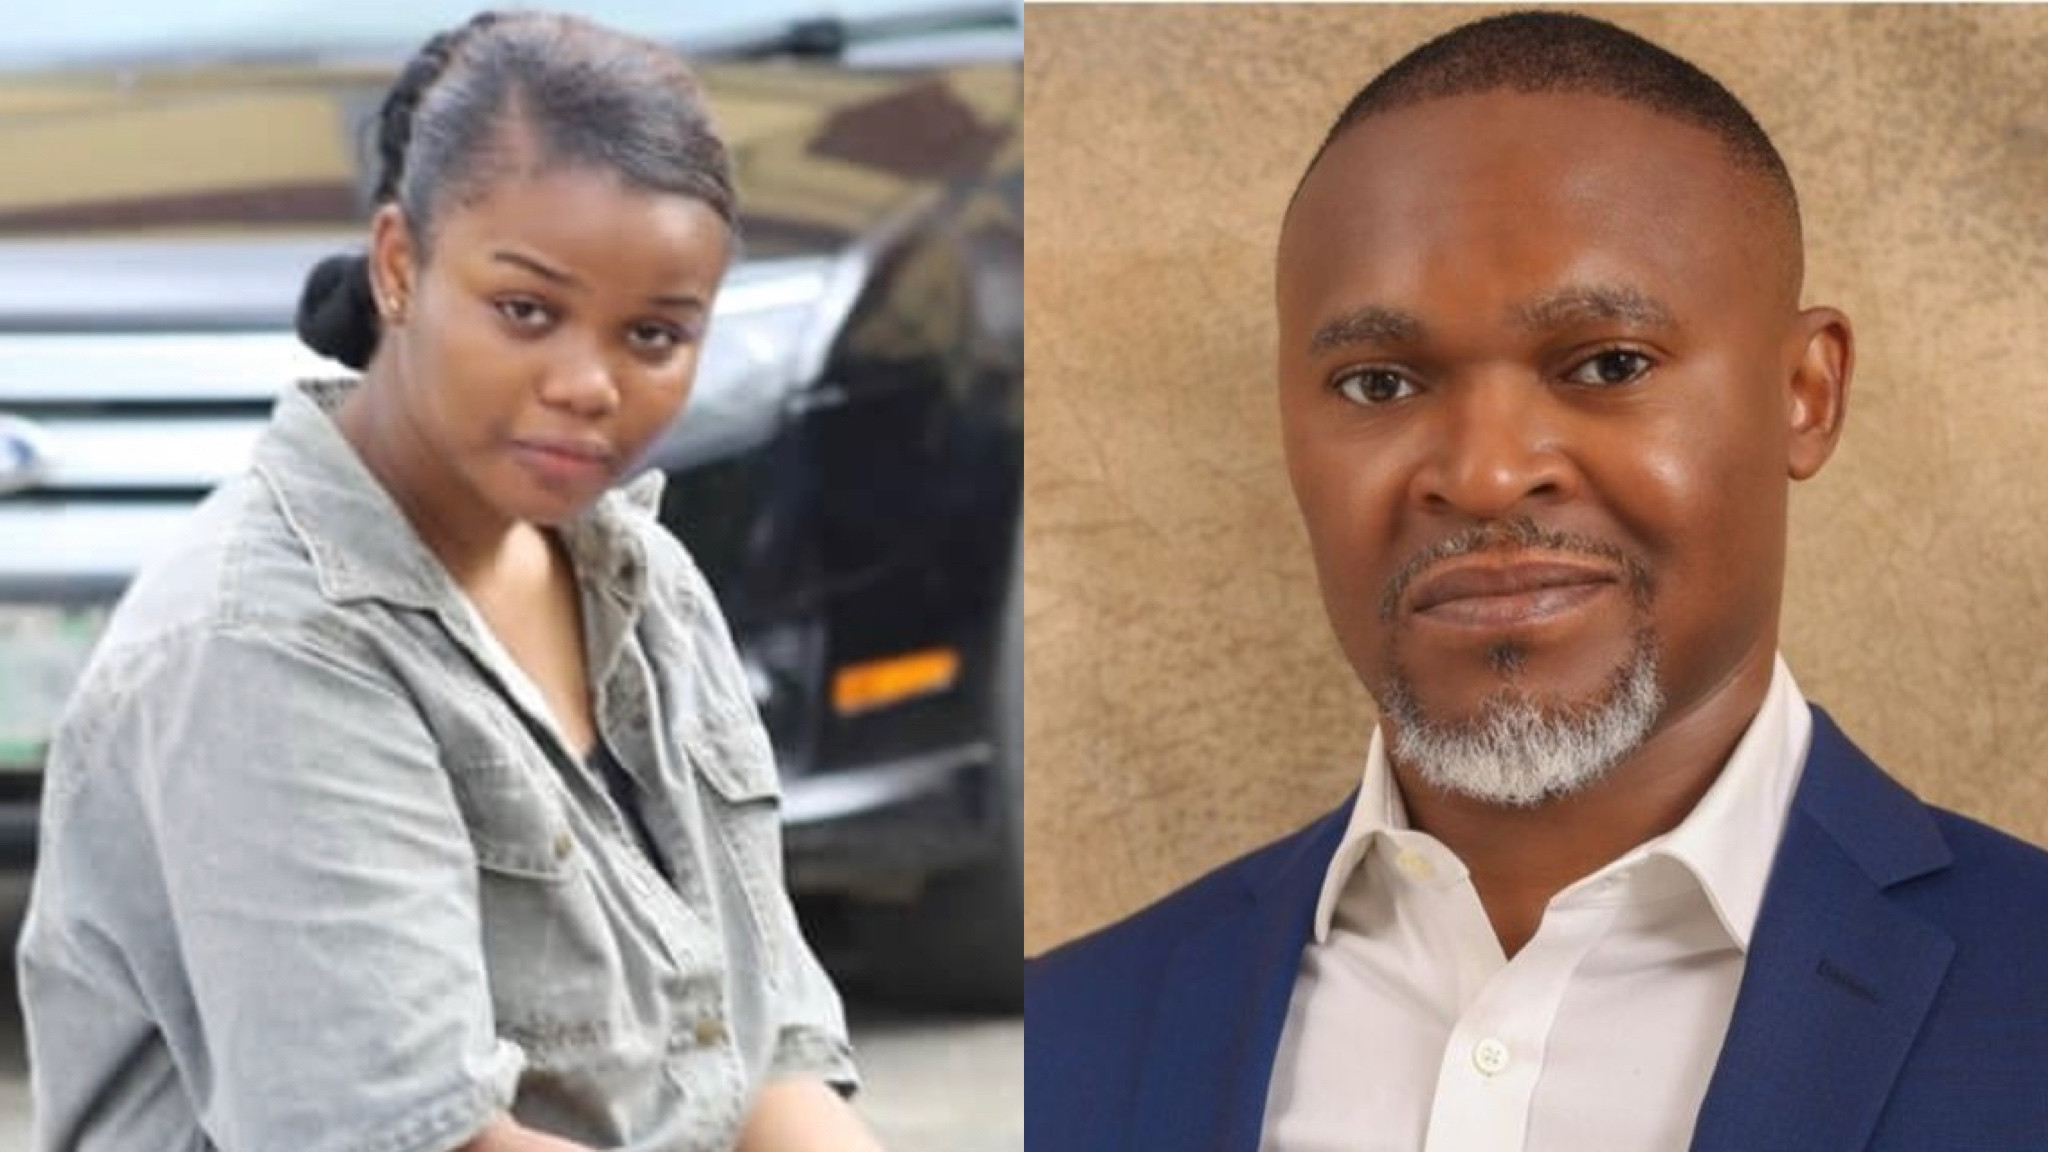 SUPER TV CEO MURDER: CHIDINMA OJUKWU AND HER SISTER CHIOMA ORDERED TO FACE TRIAL AT LAGOS HIGH COURT